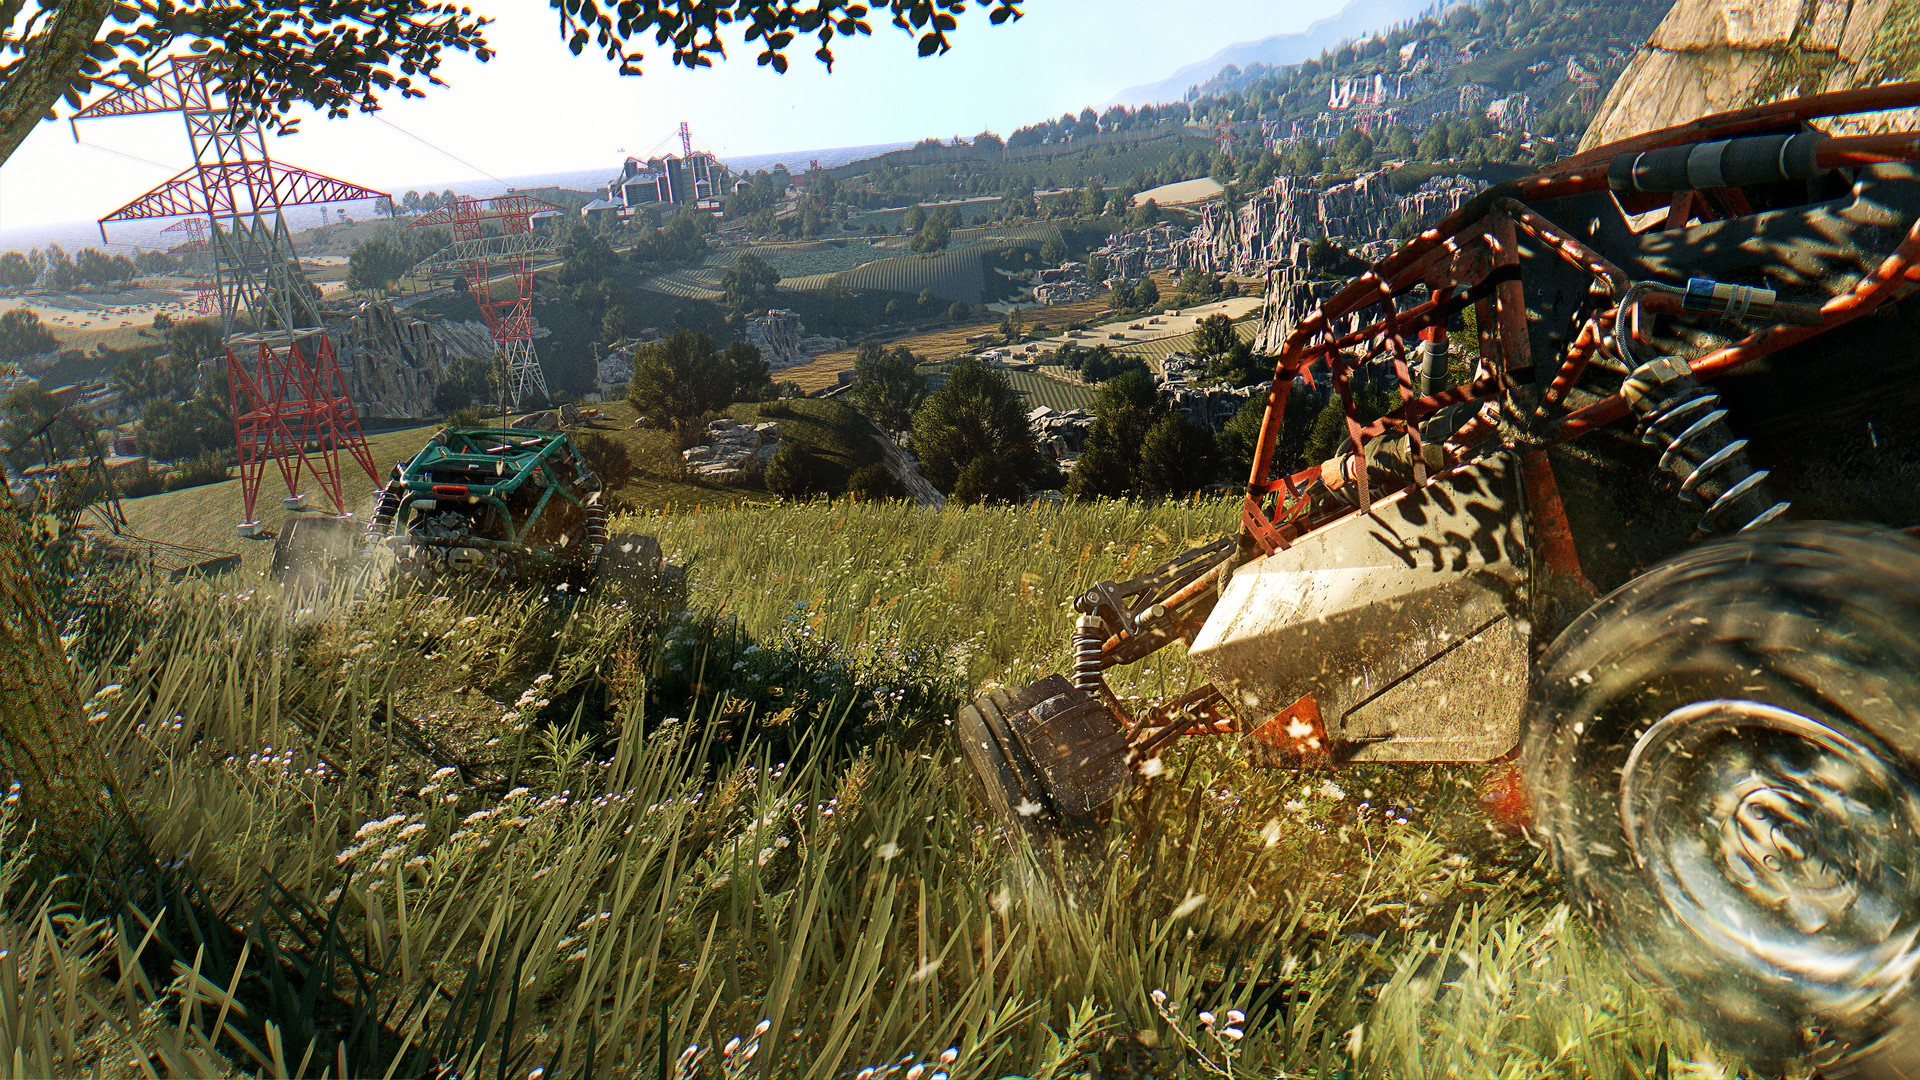 download dying light the following enhanced edition reinforcements-reloaded singlelink iso rar part google drive direct link uptobox ftp link magnet torrent thepiratebay kickass alternative